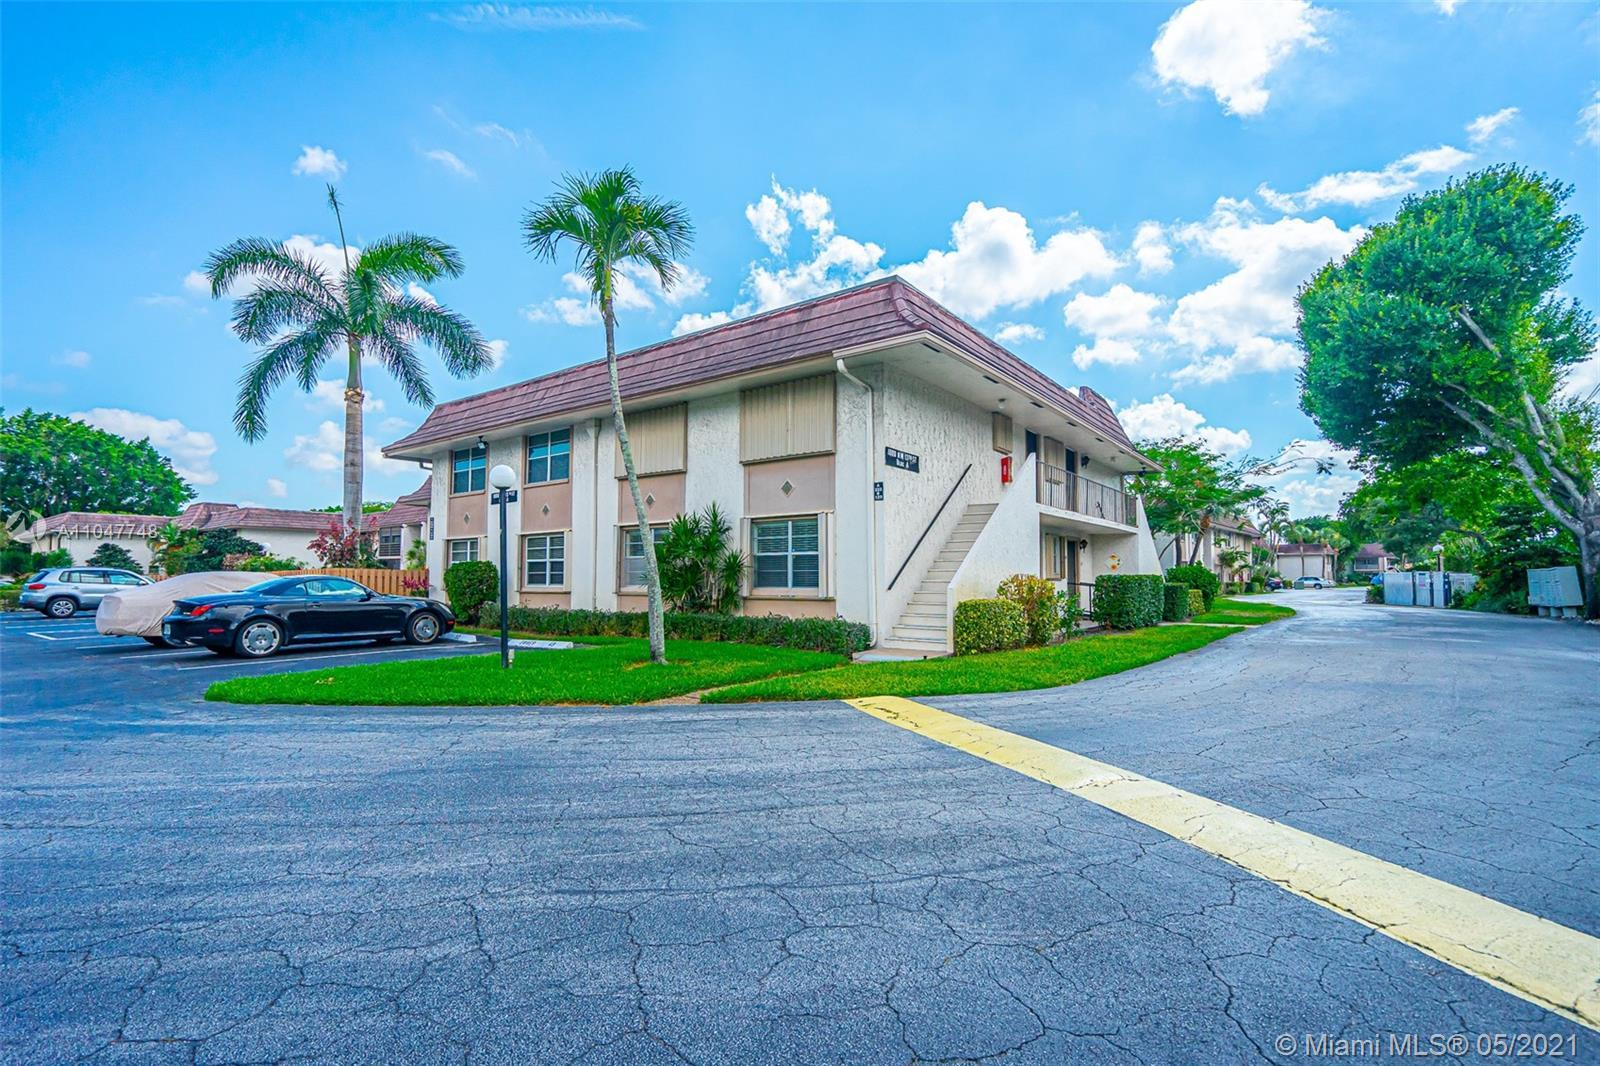 3 bedroom with 2 bathroom, stackable washer and dryer in unit, updated kitchen, granite countertop,